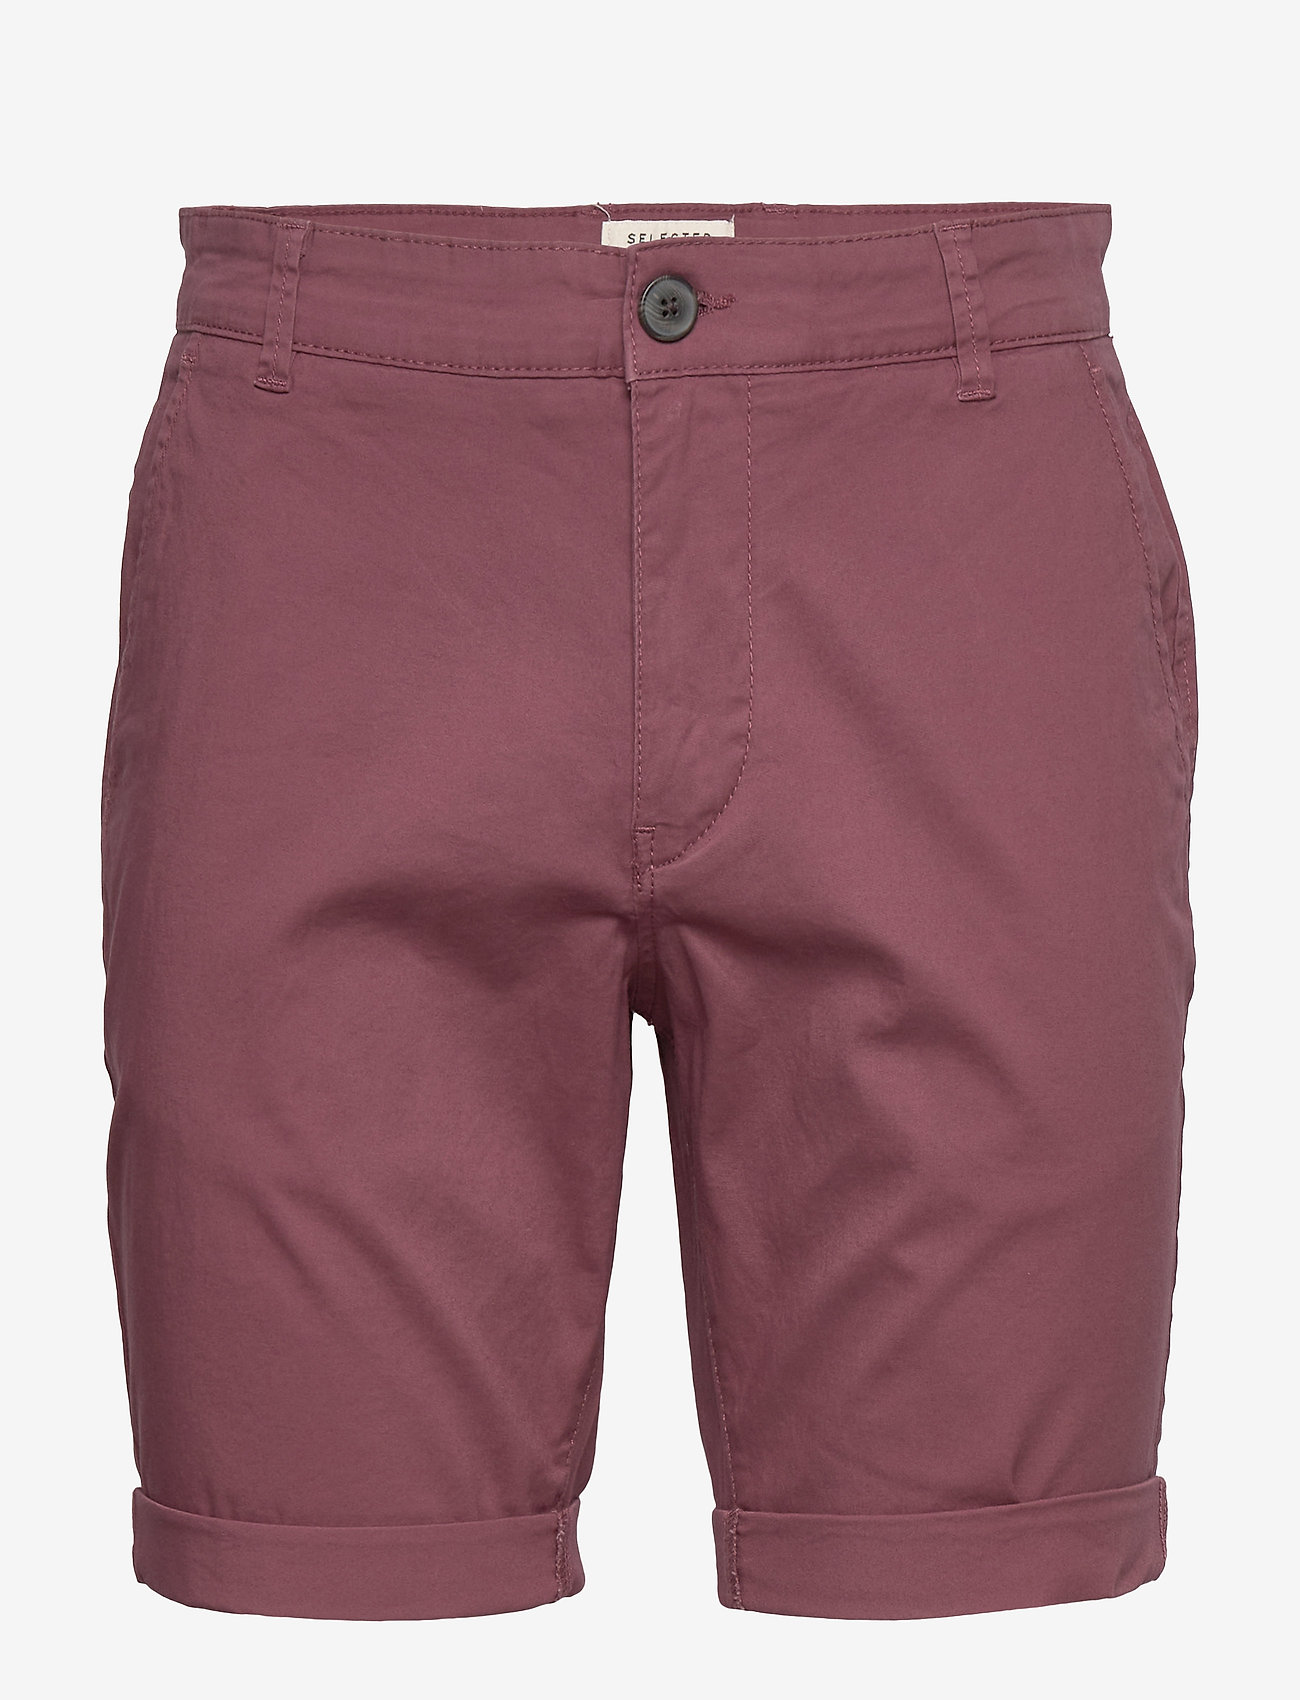 Selected Homme - SLHSTRAIGHT-PARIS SHORTS W NOOS - chino's shorts - wild ginger - 0